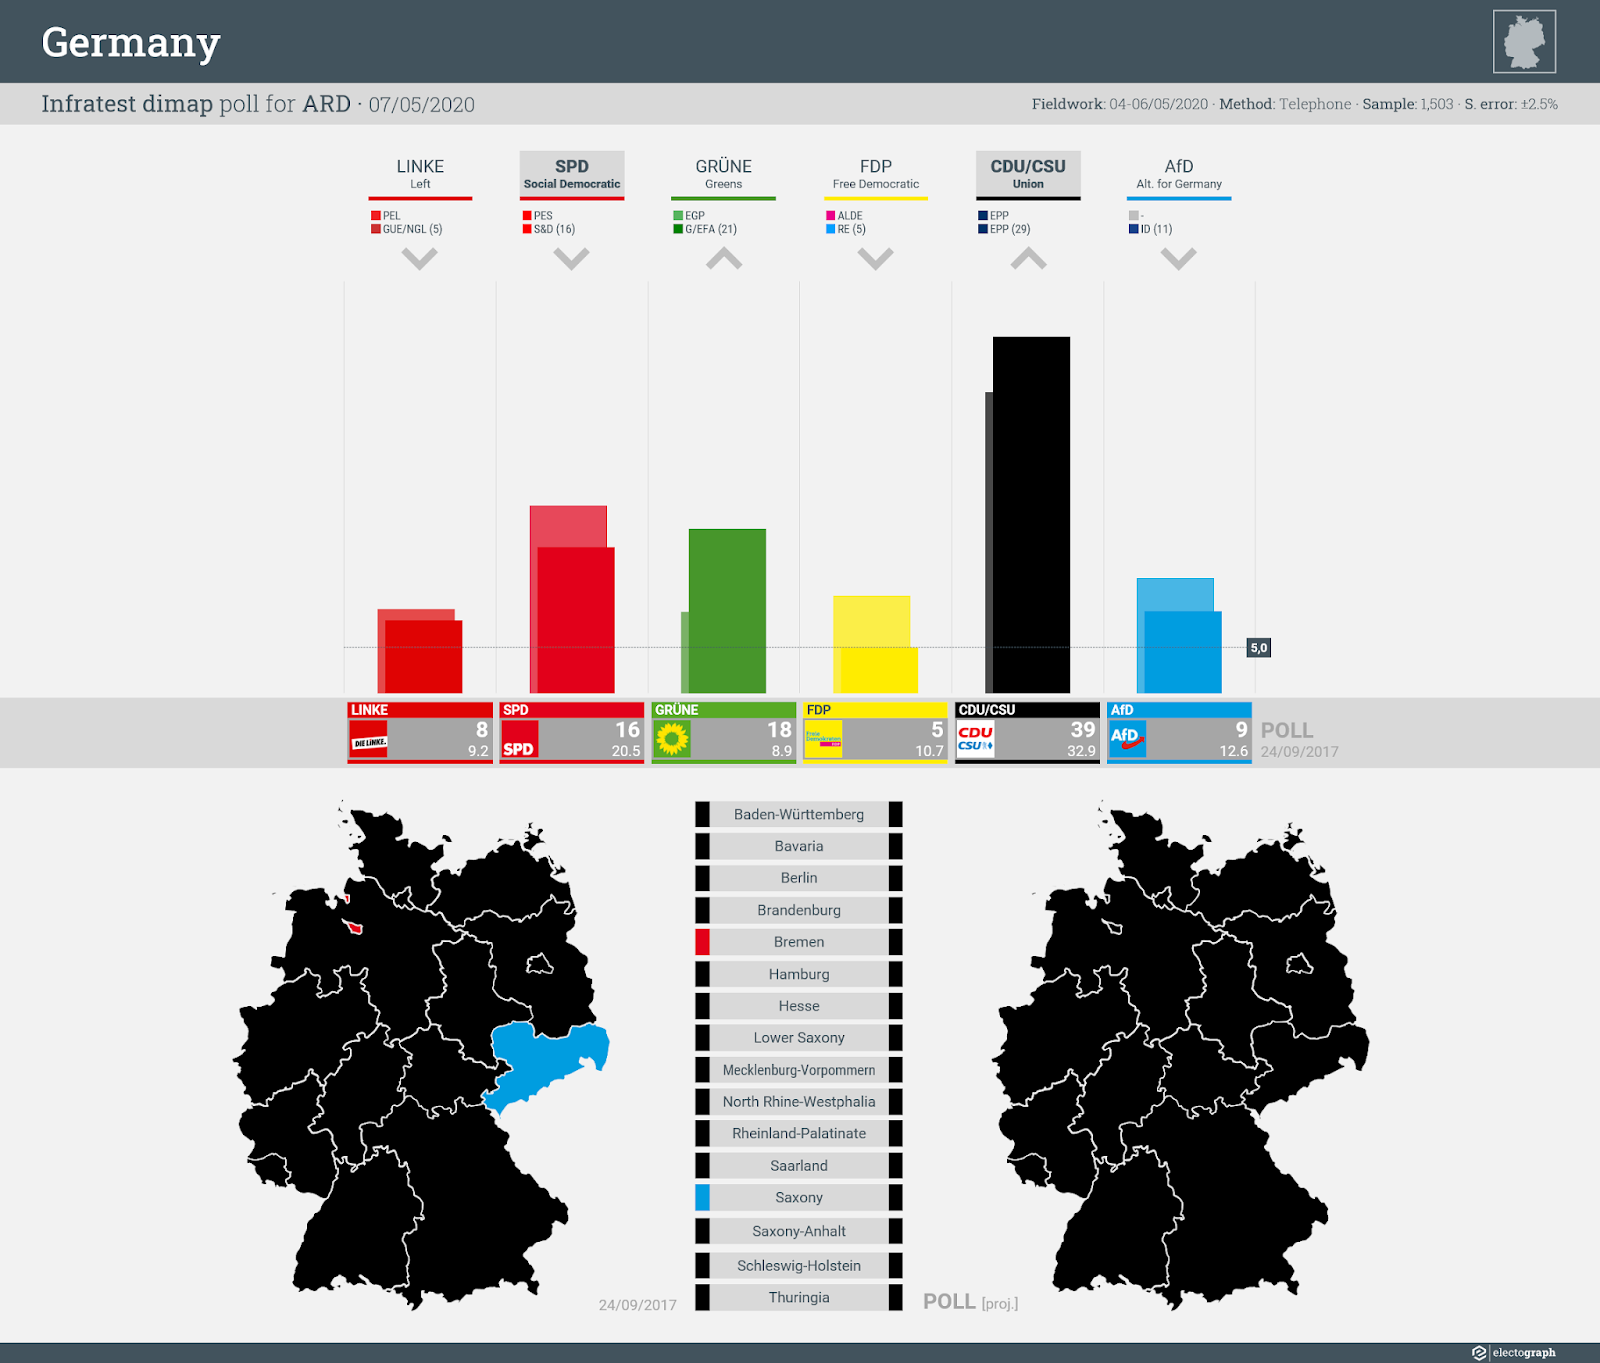 GERMANY: Infratest dimap poll chart for ARD, 7 May 2020